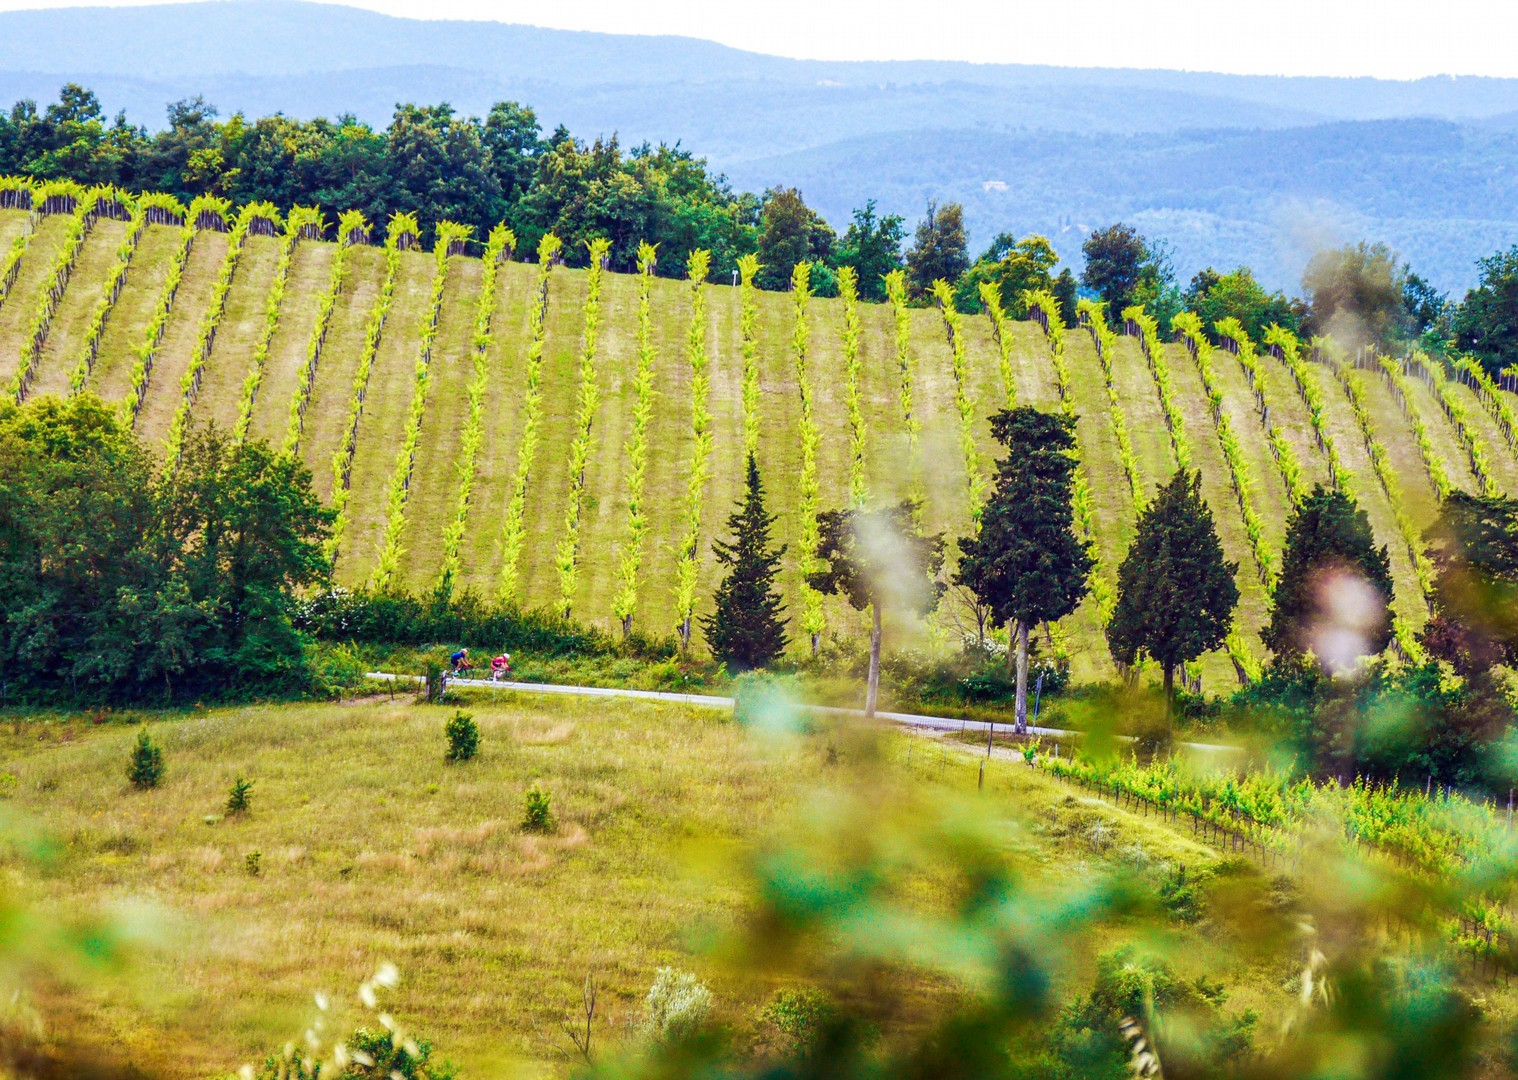 Riding through the vineyards.jpg - Italy - Tuscany - Giro della Toscana - Guided Road Cycling Holiday - Road Cycling